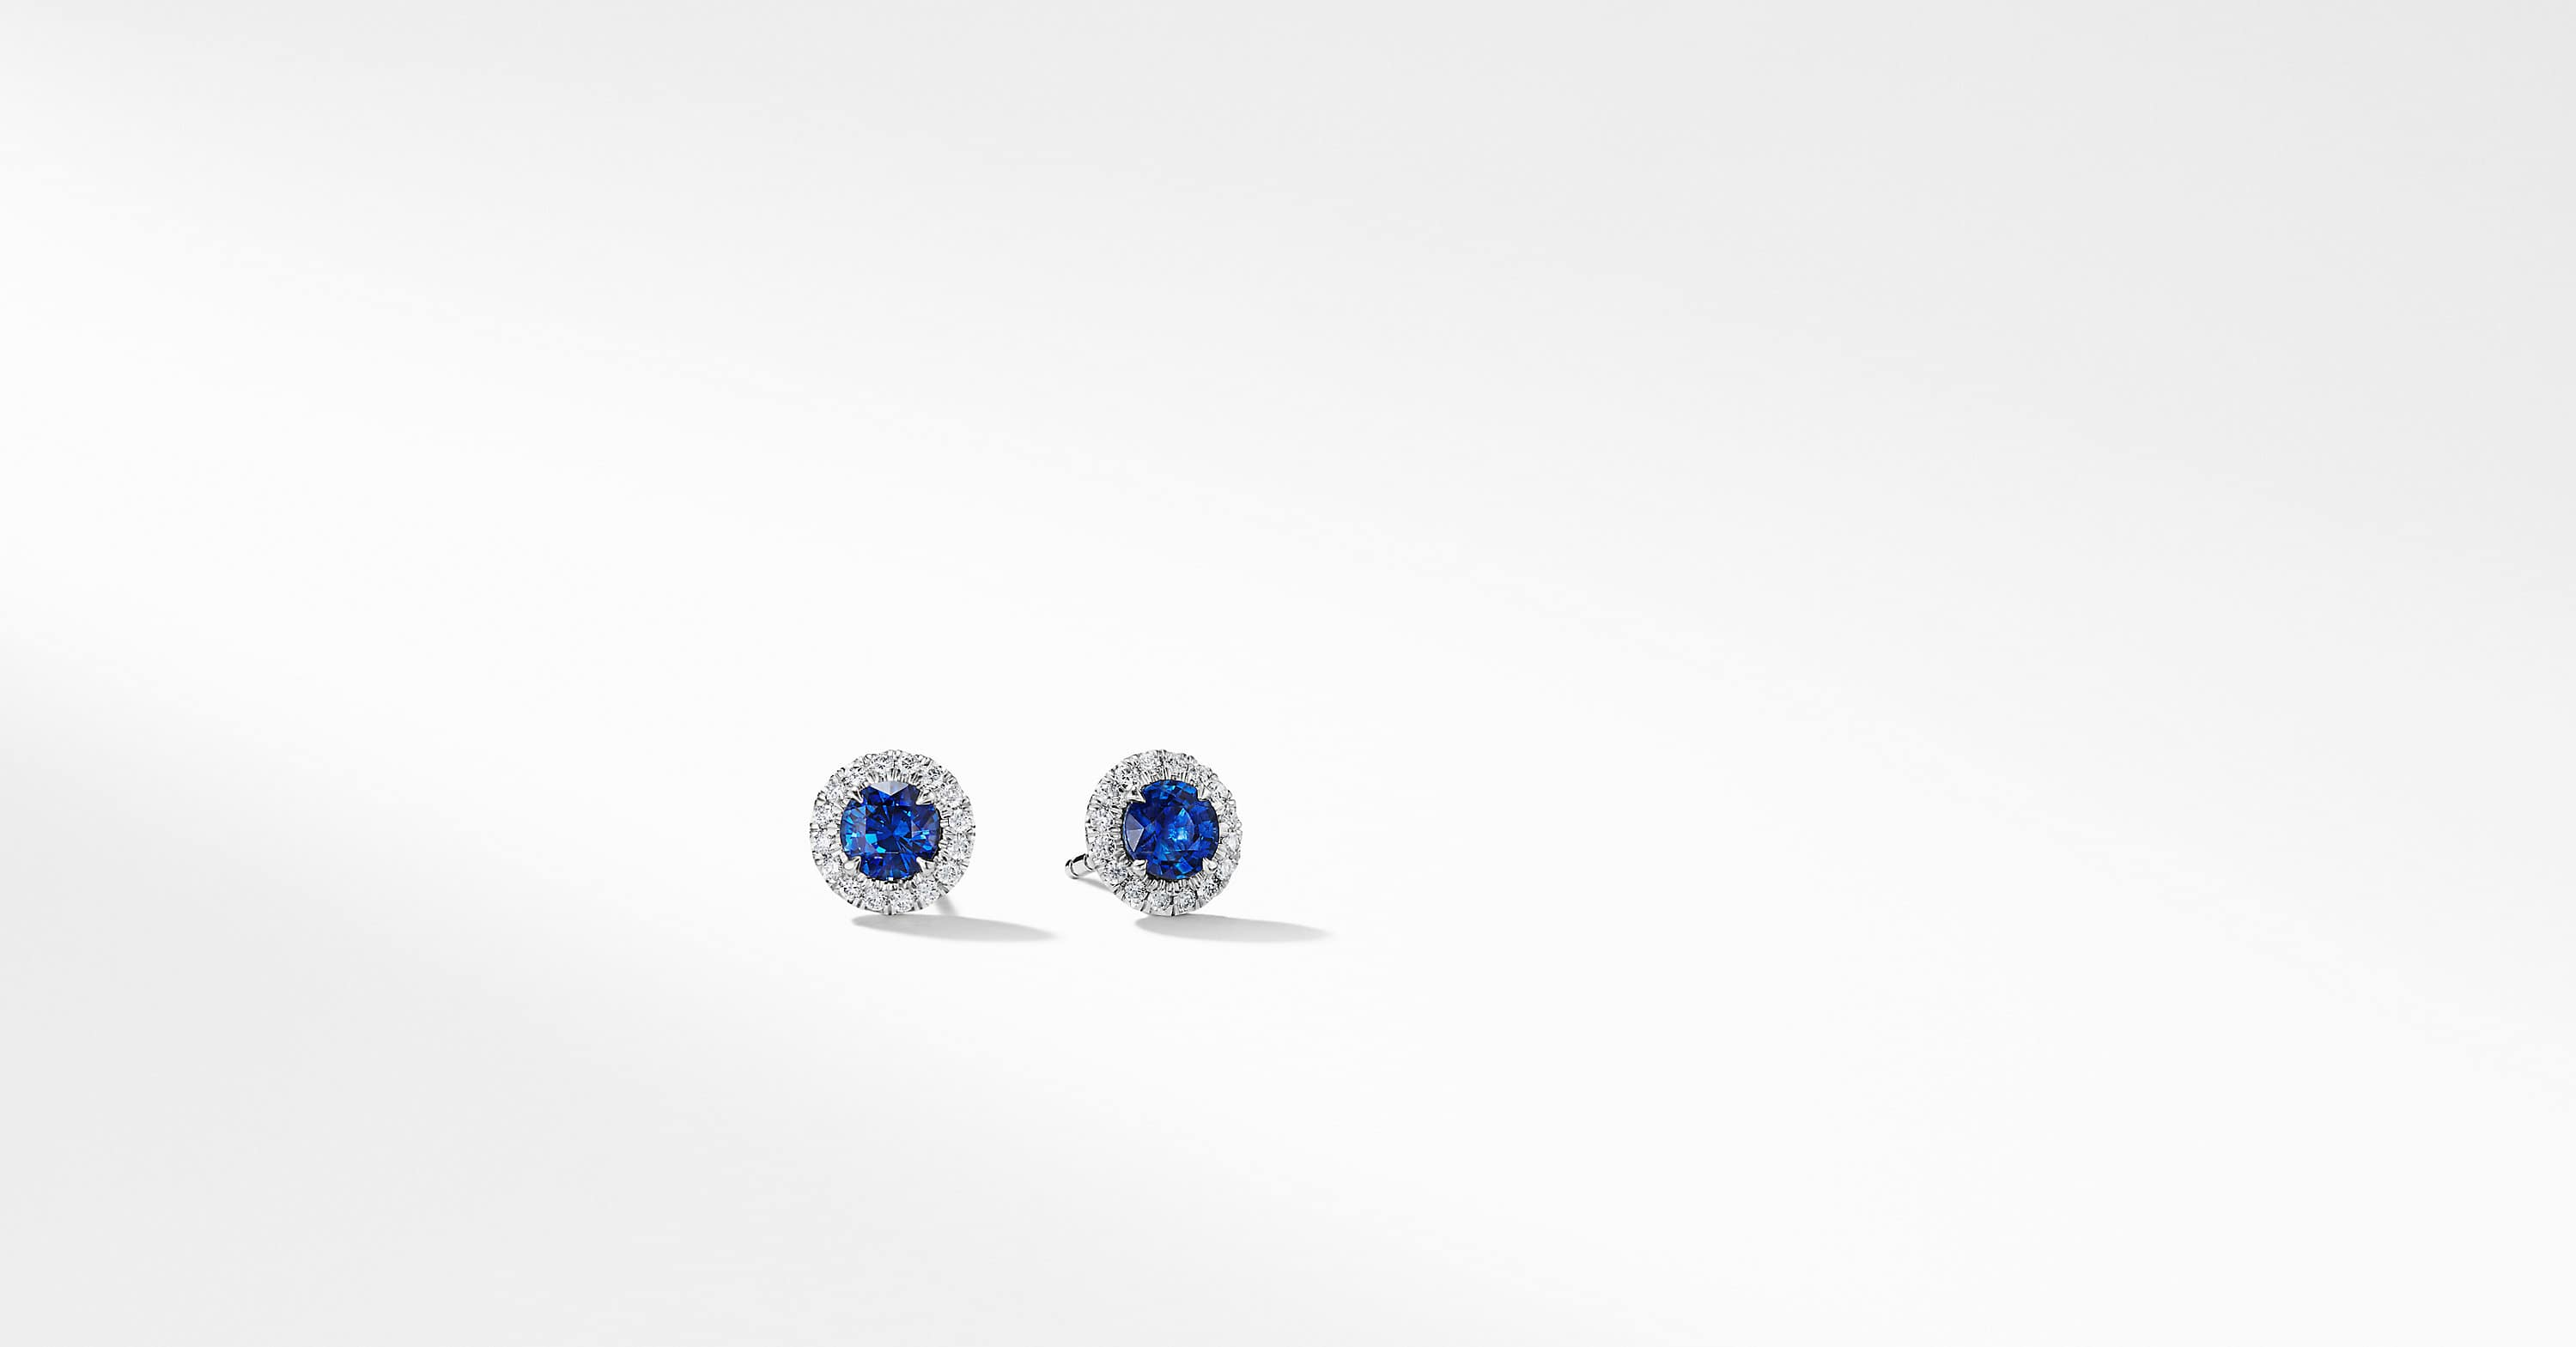 DY Capri Stud Earrings in 18K White Gold with Blue Sapphires and Diamonds